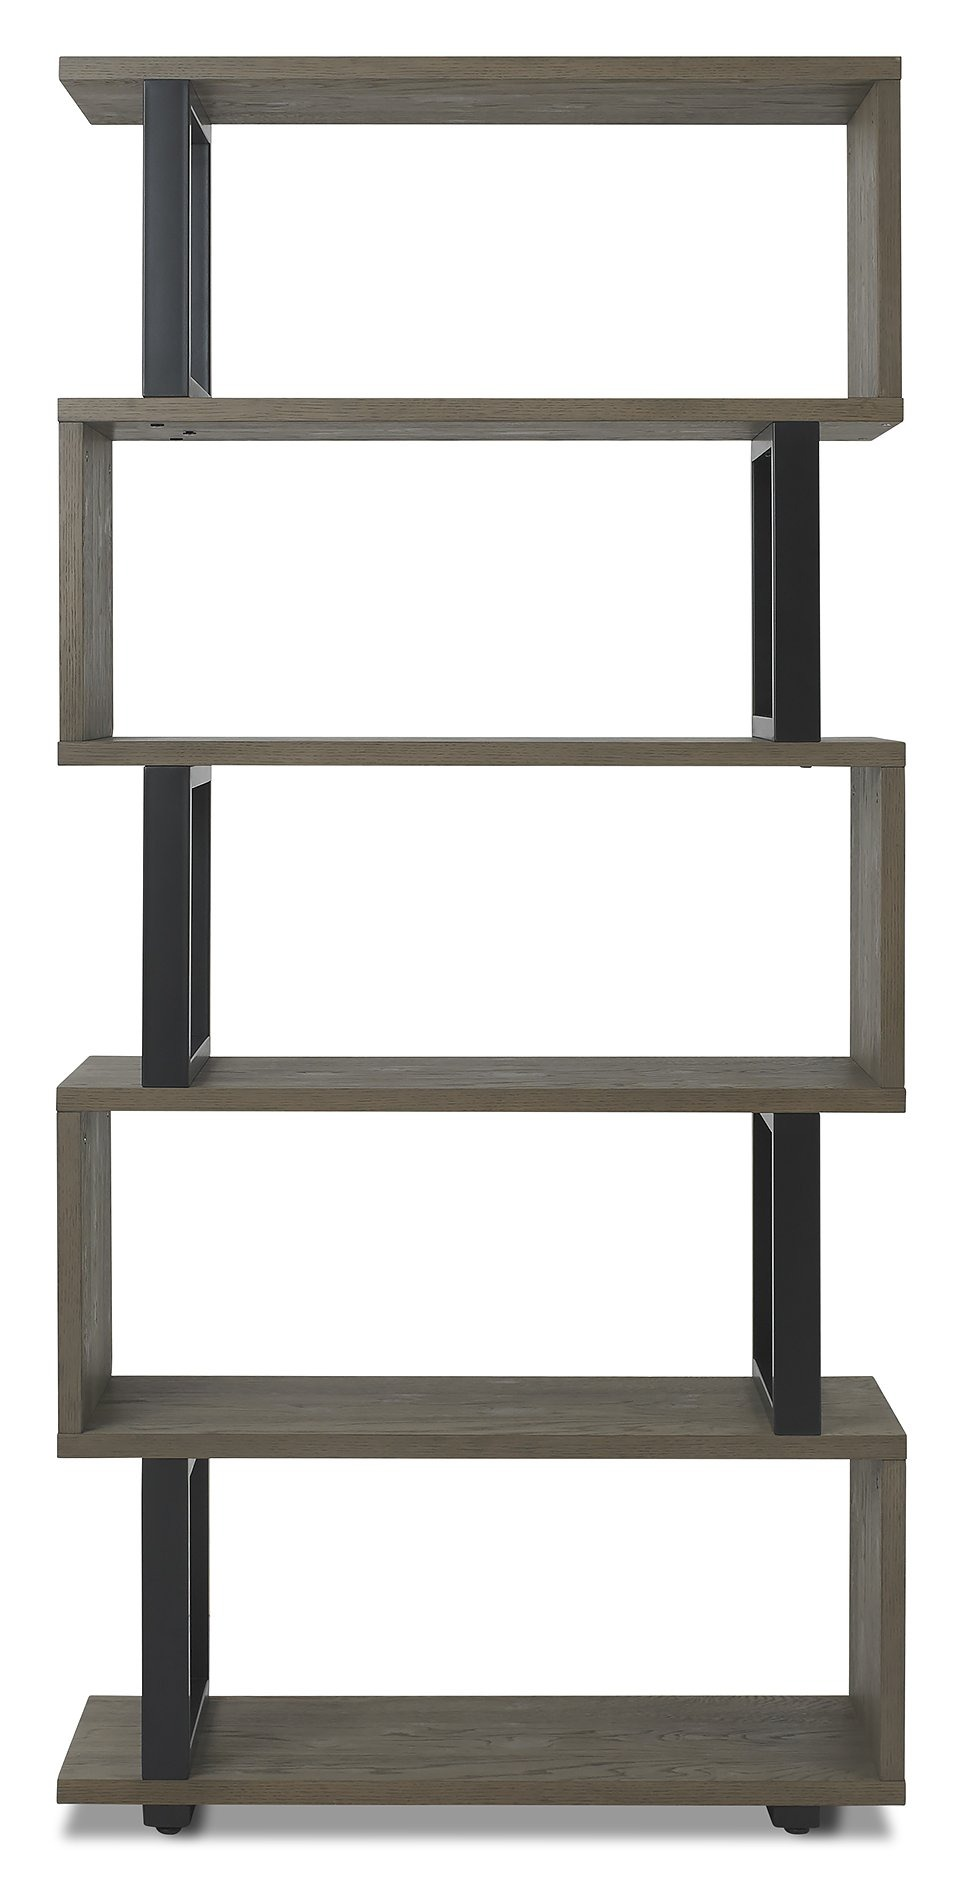 BRINDISI OPEN BOOKCASE - FRONT VIEW